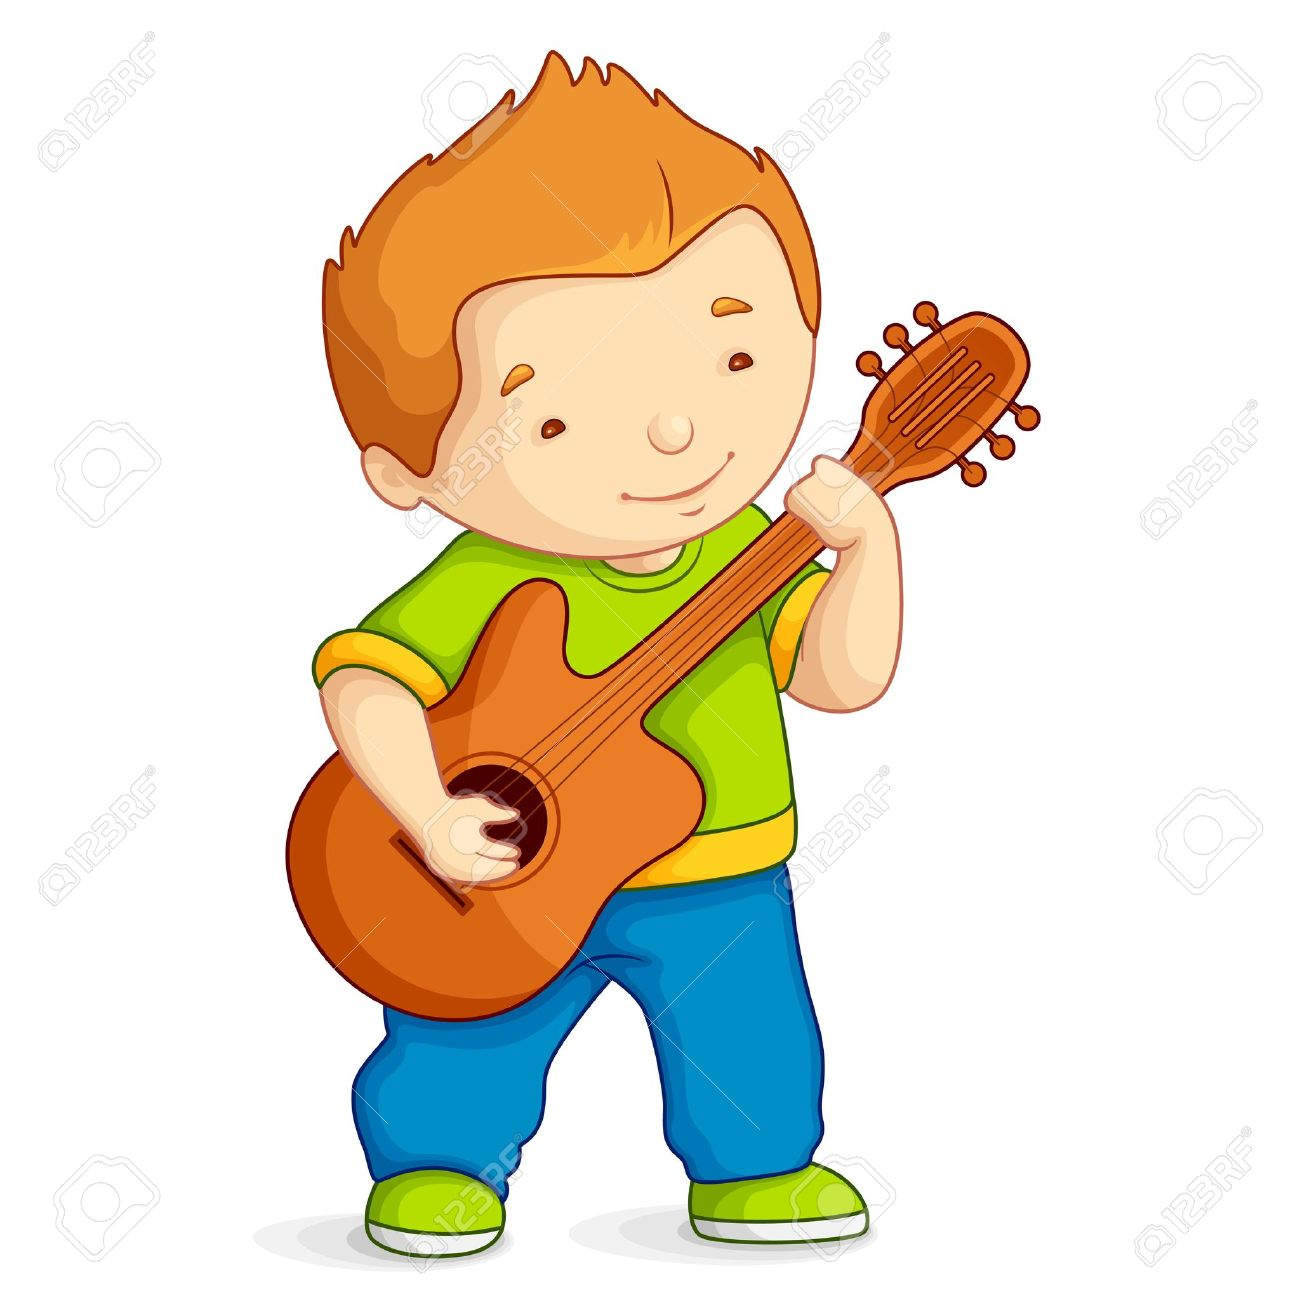 Kid Playing Guitar Royalty Free Cliparts, Vectors, And Stock ...